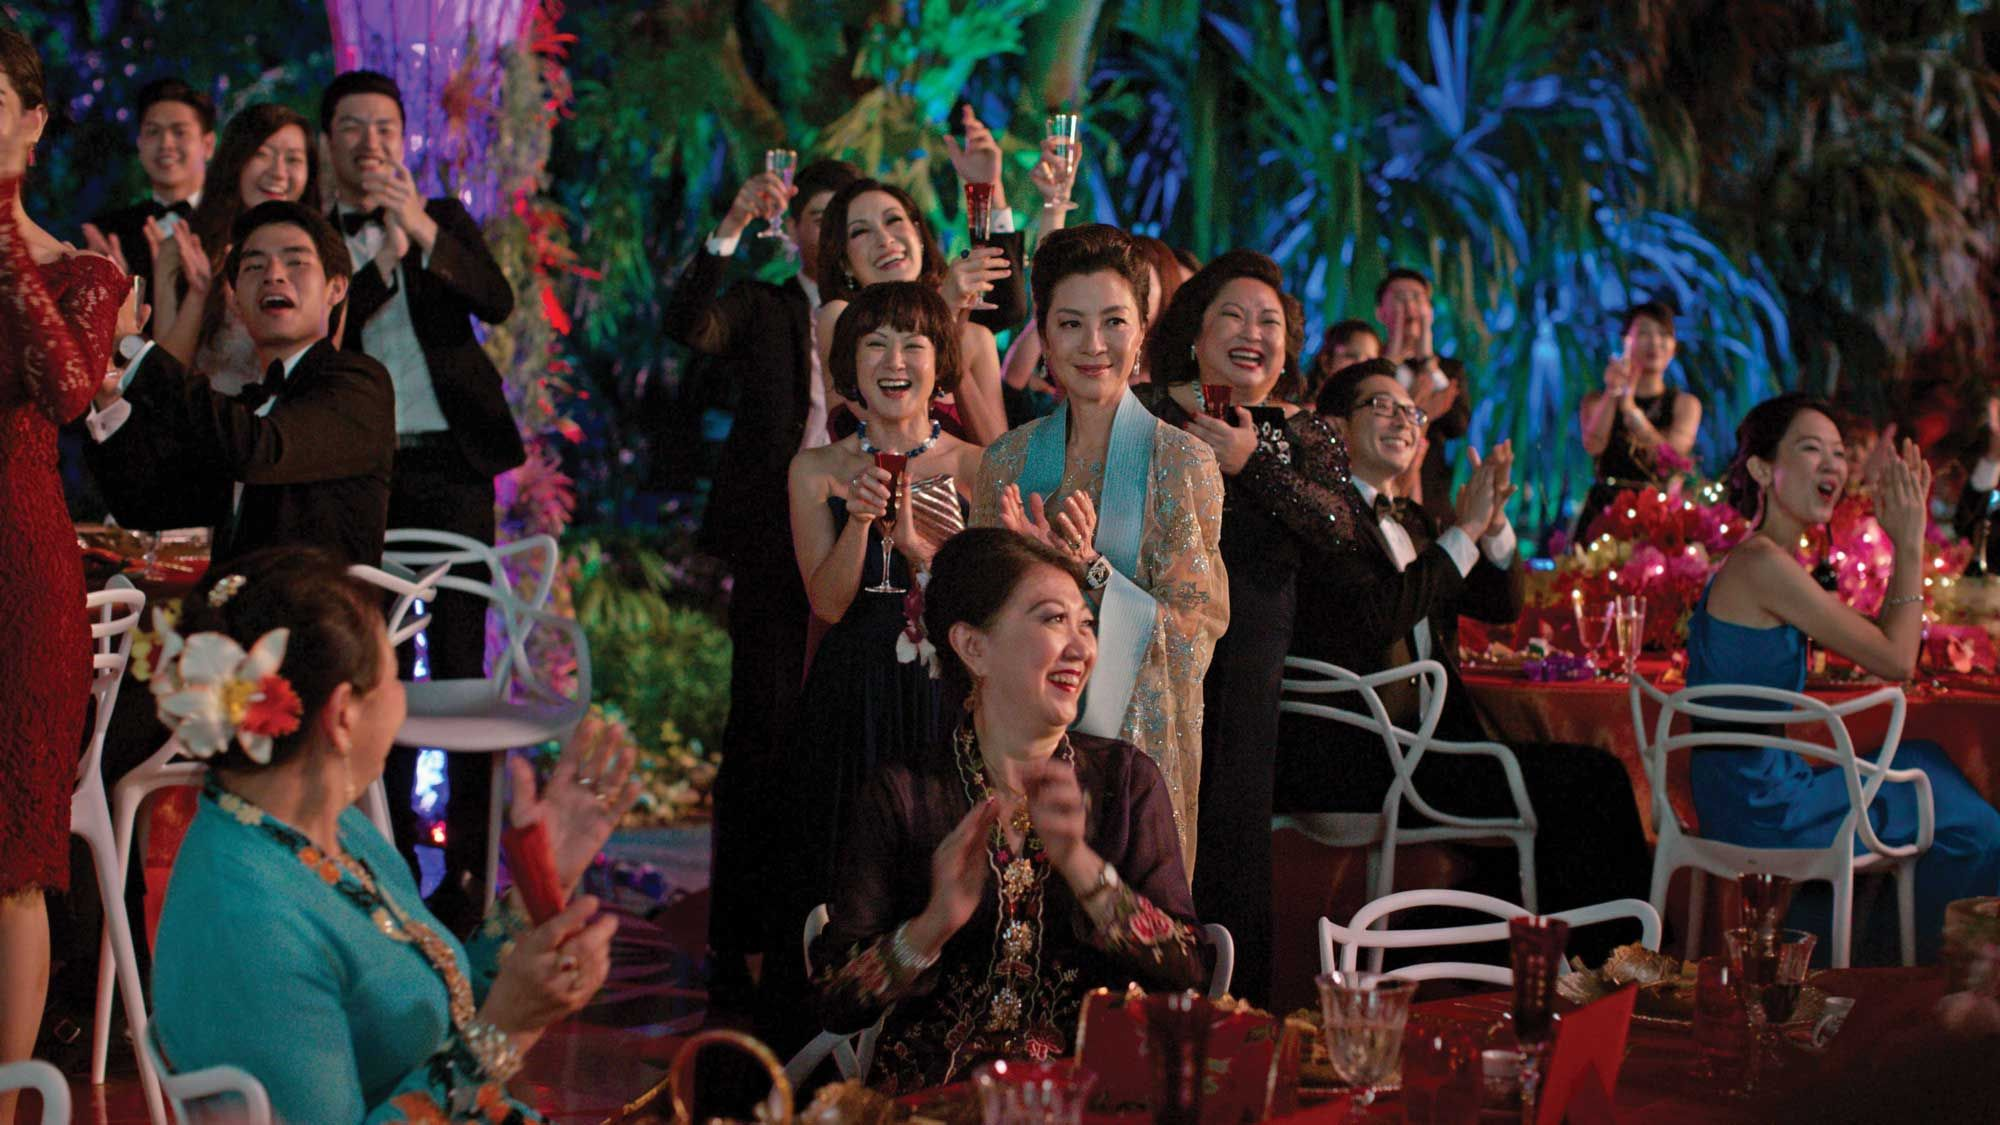 Meeting The In-Laws: 5 Tips From Crazy Rich Asians